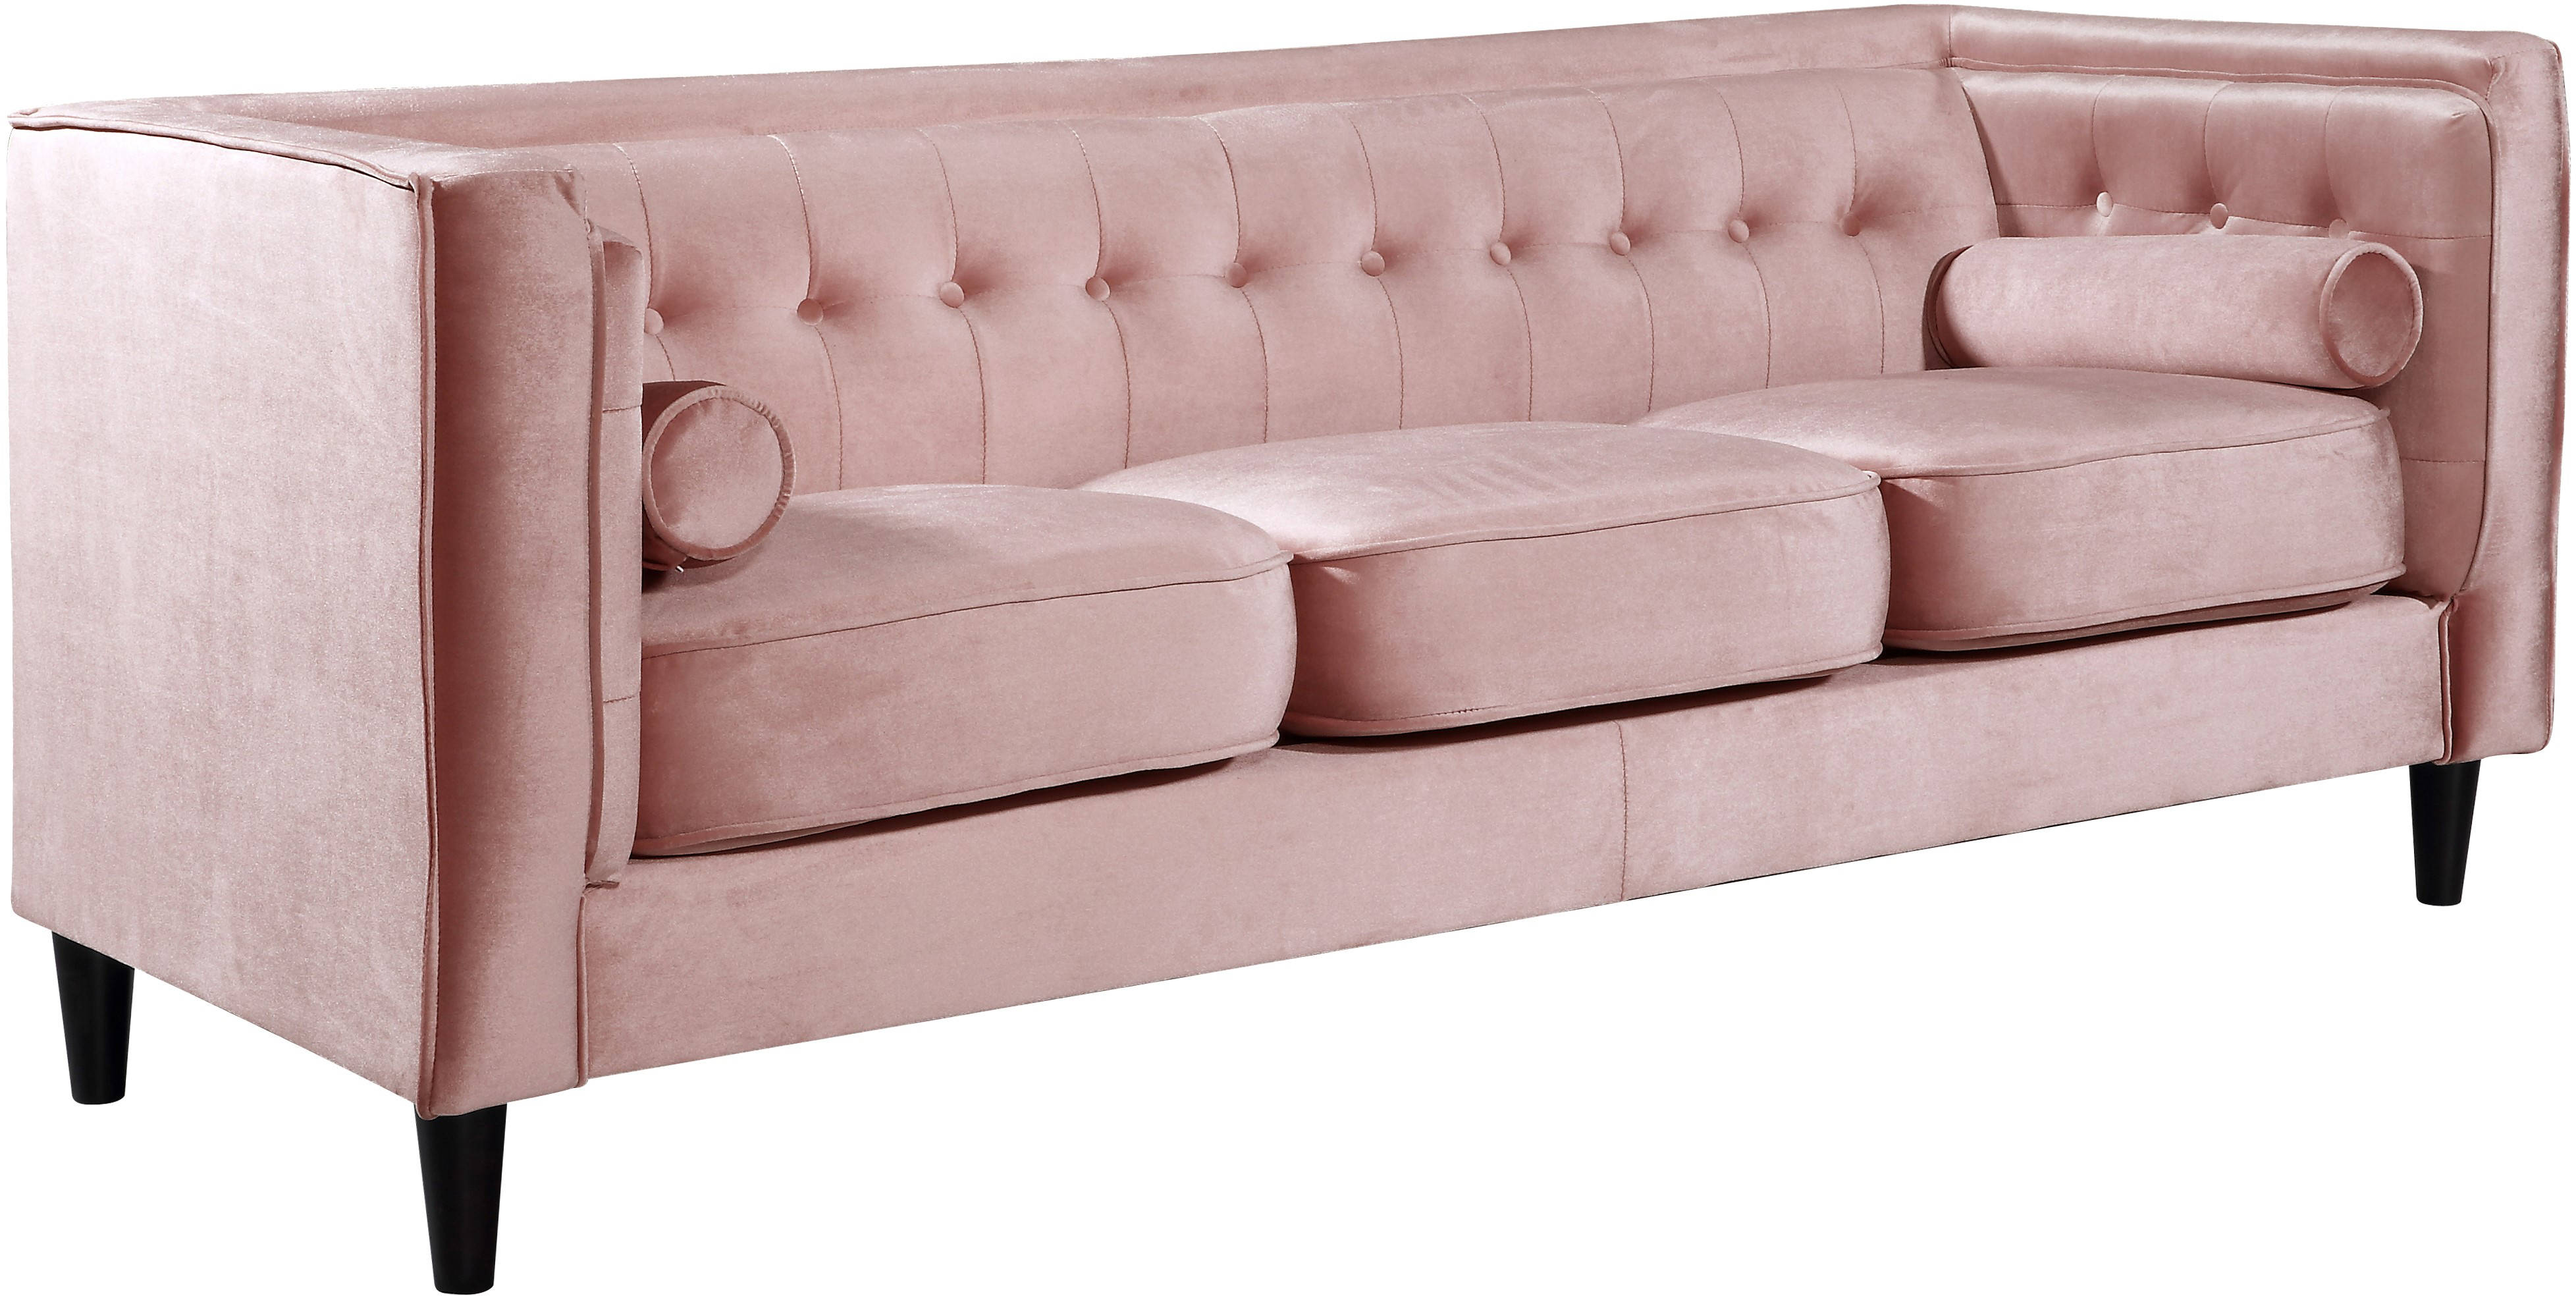 Meridian Furniture Taylor Pink Velvet Sofa The Classy Home